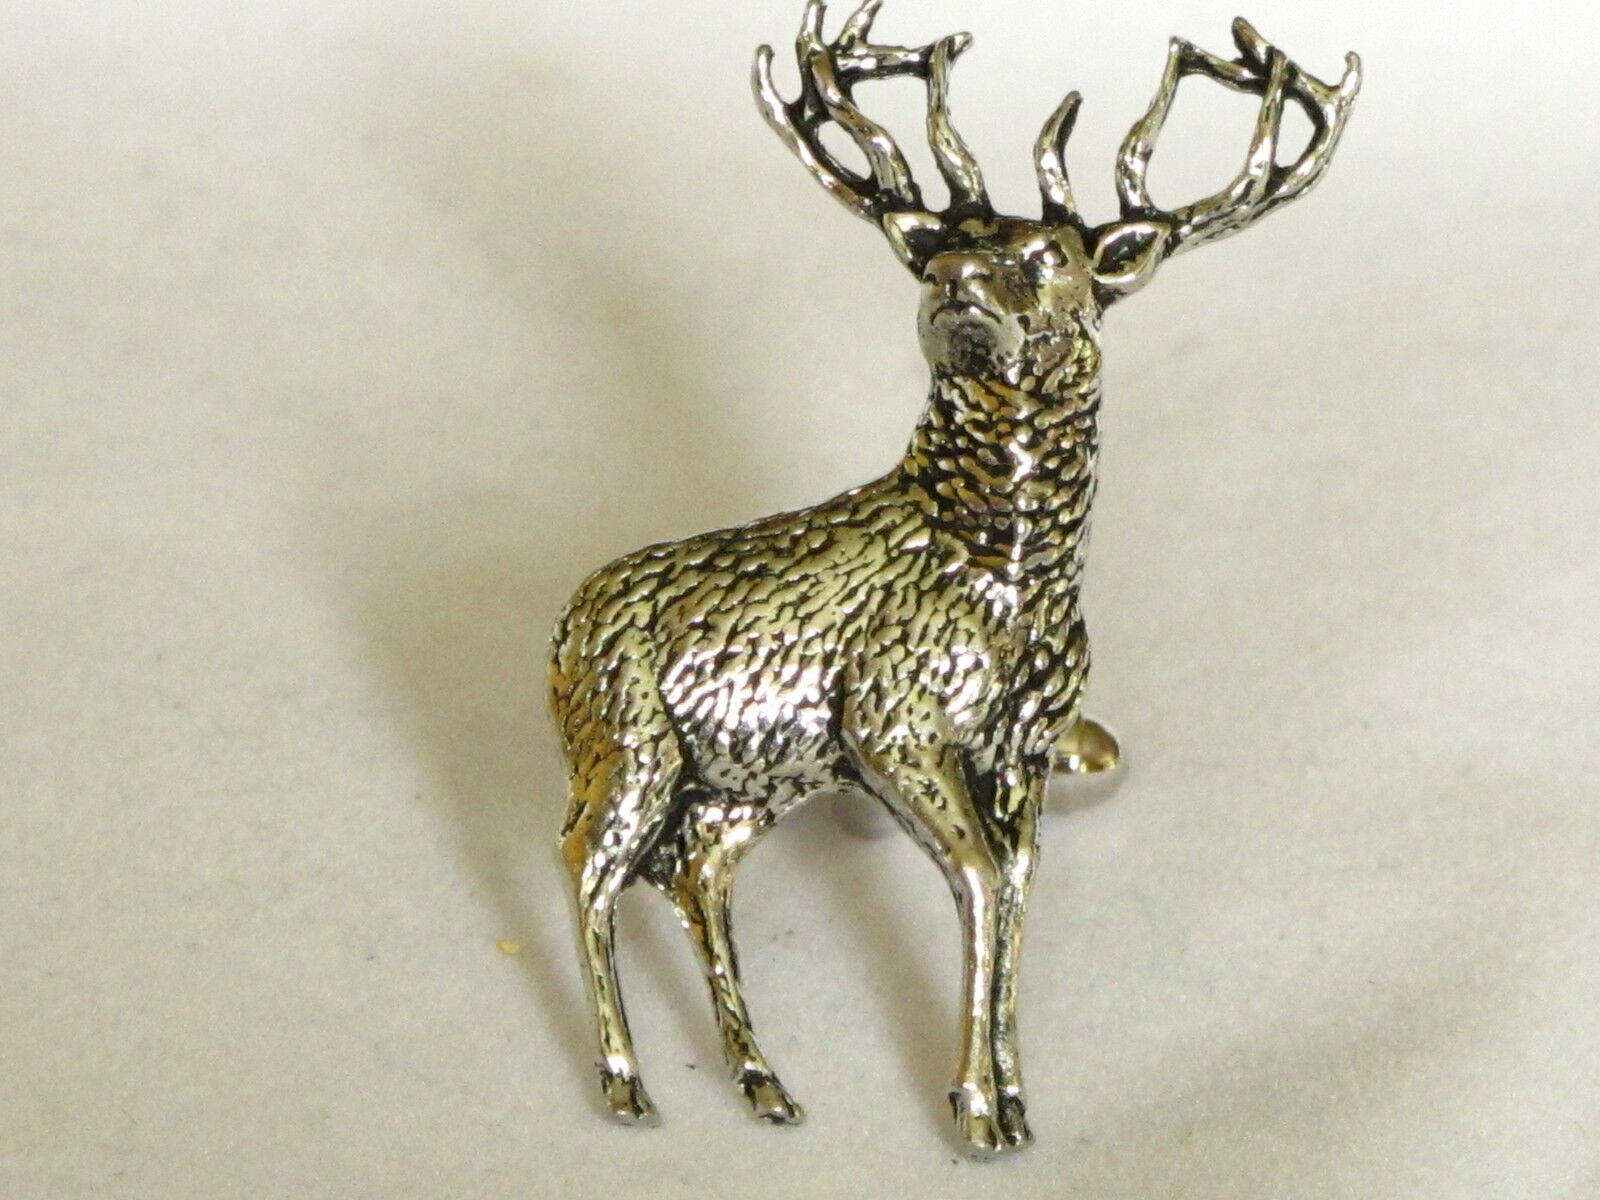 Full Stag Deer Hunting Large Fine  Pewter Cufflinks Gift Mens Jewellery Boxed  for cheap